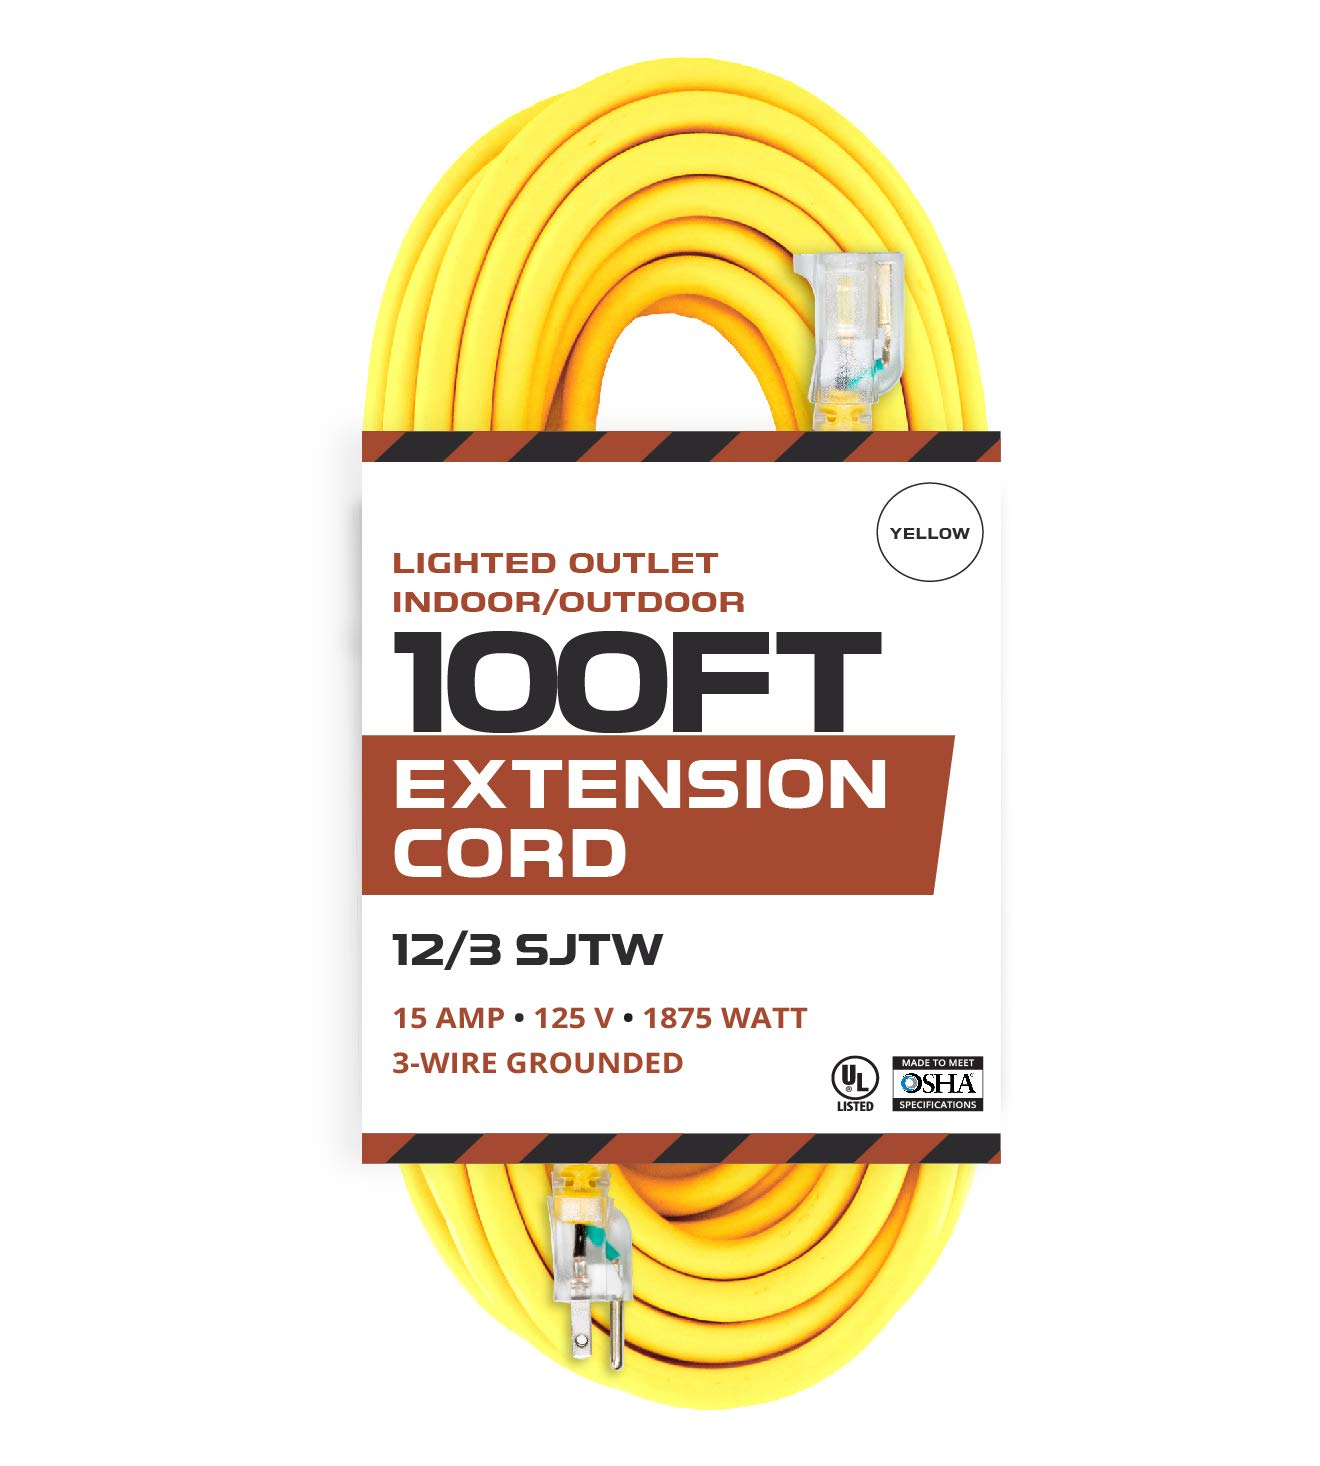 Outdoor Extension Cord - 12/3 SJTW Heavy Duty Yellow 3 Prong Extension Cable - Great for Garden and Major Appliances (100 Foot - Yellow)